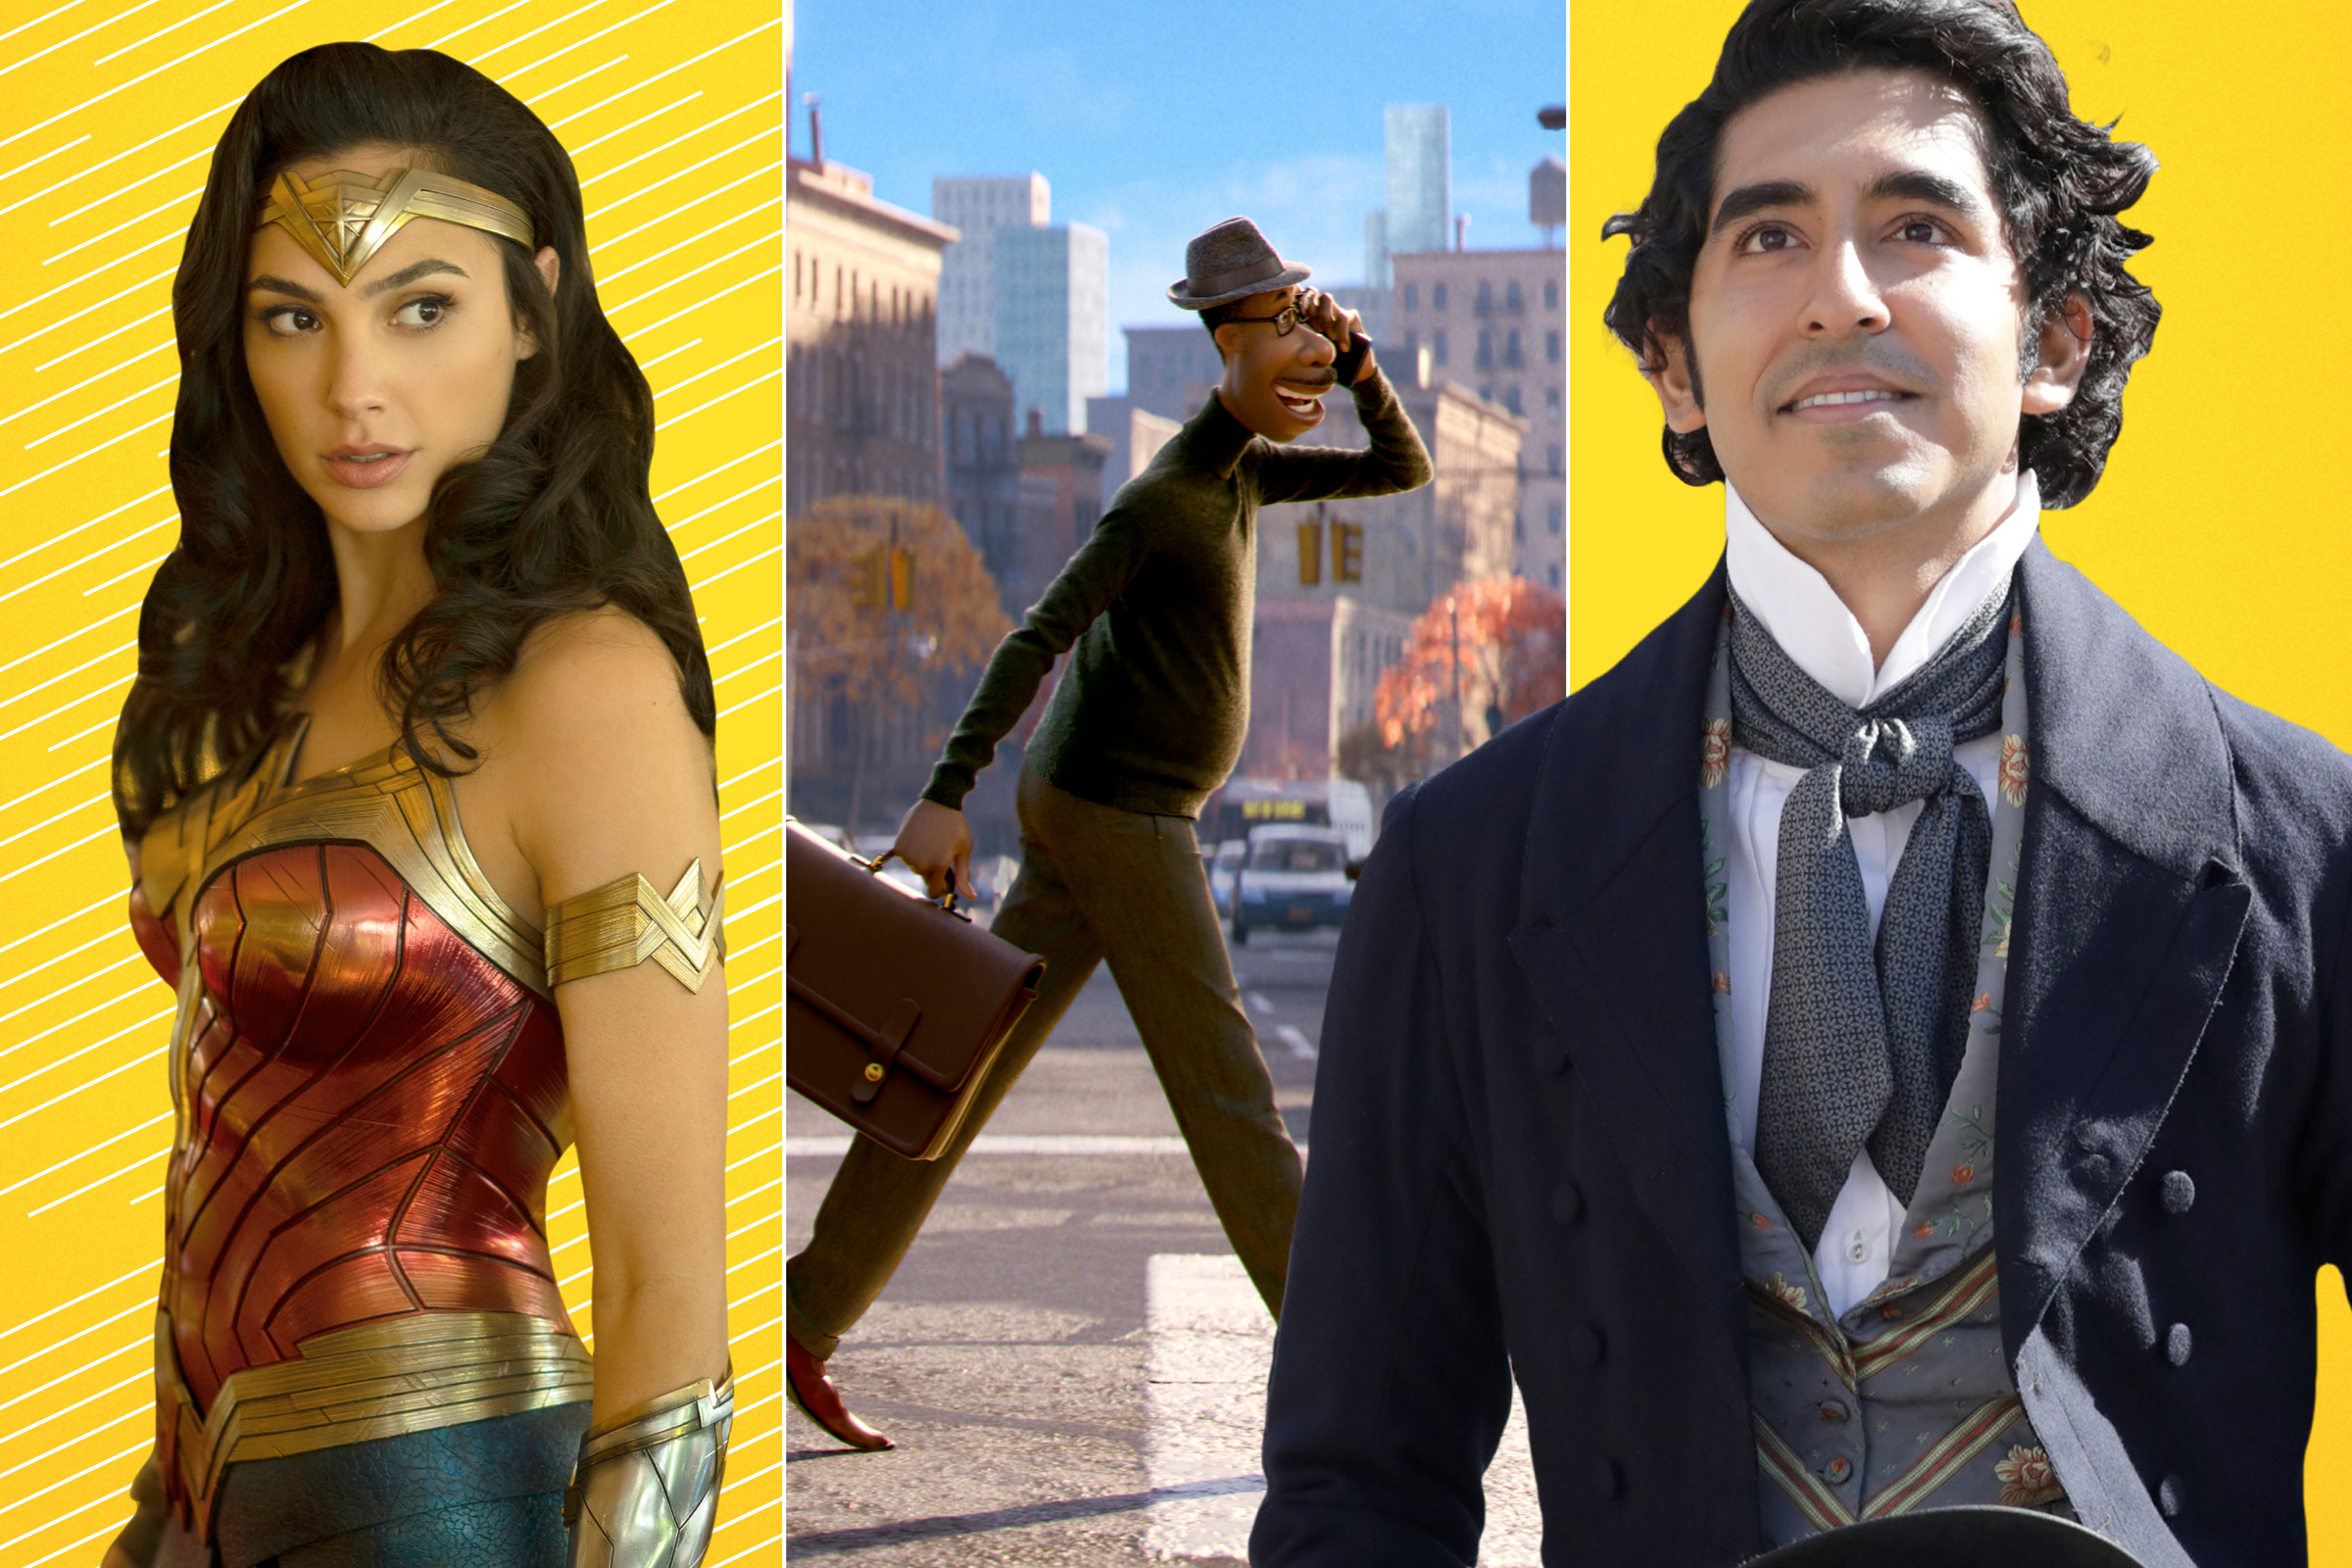 Which movie is most anticipated in 2020?